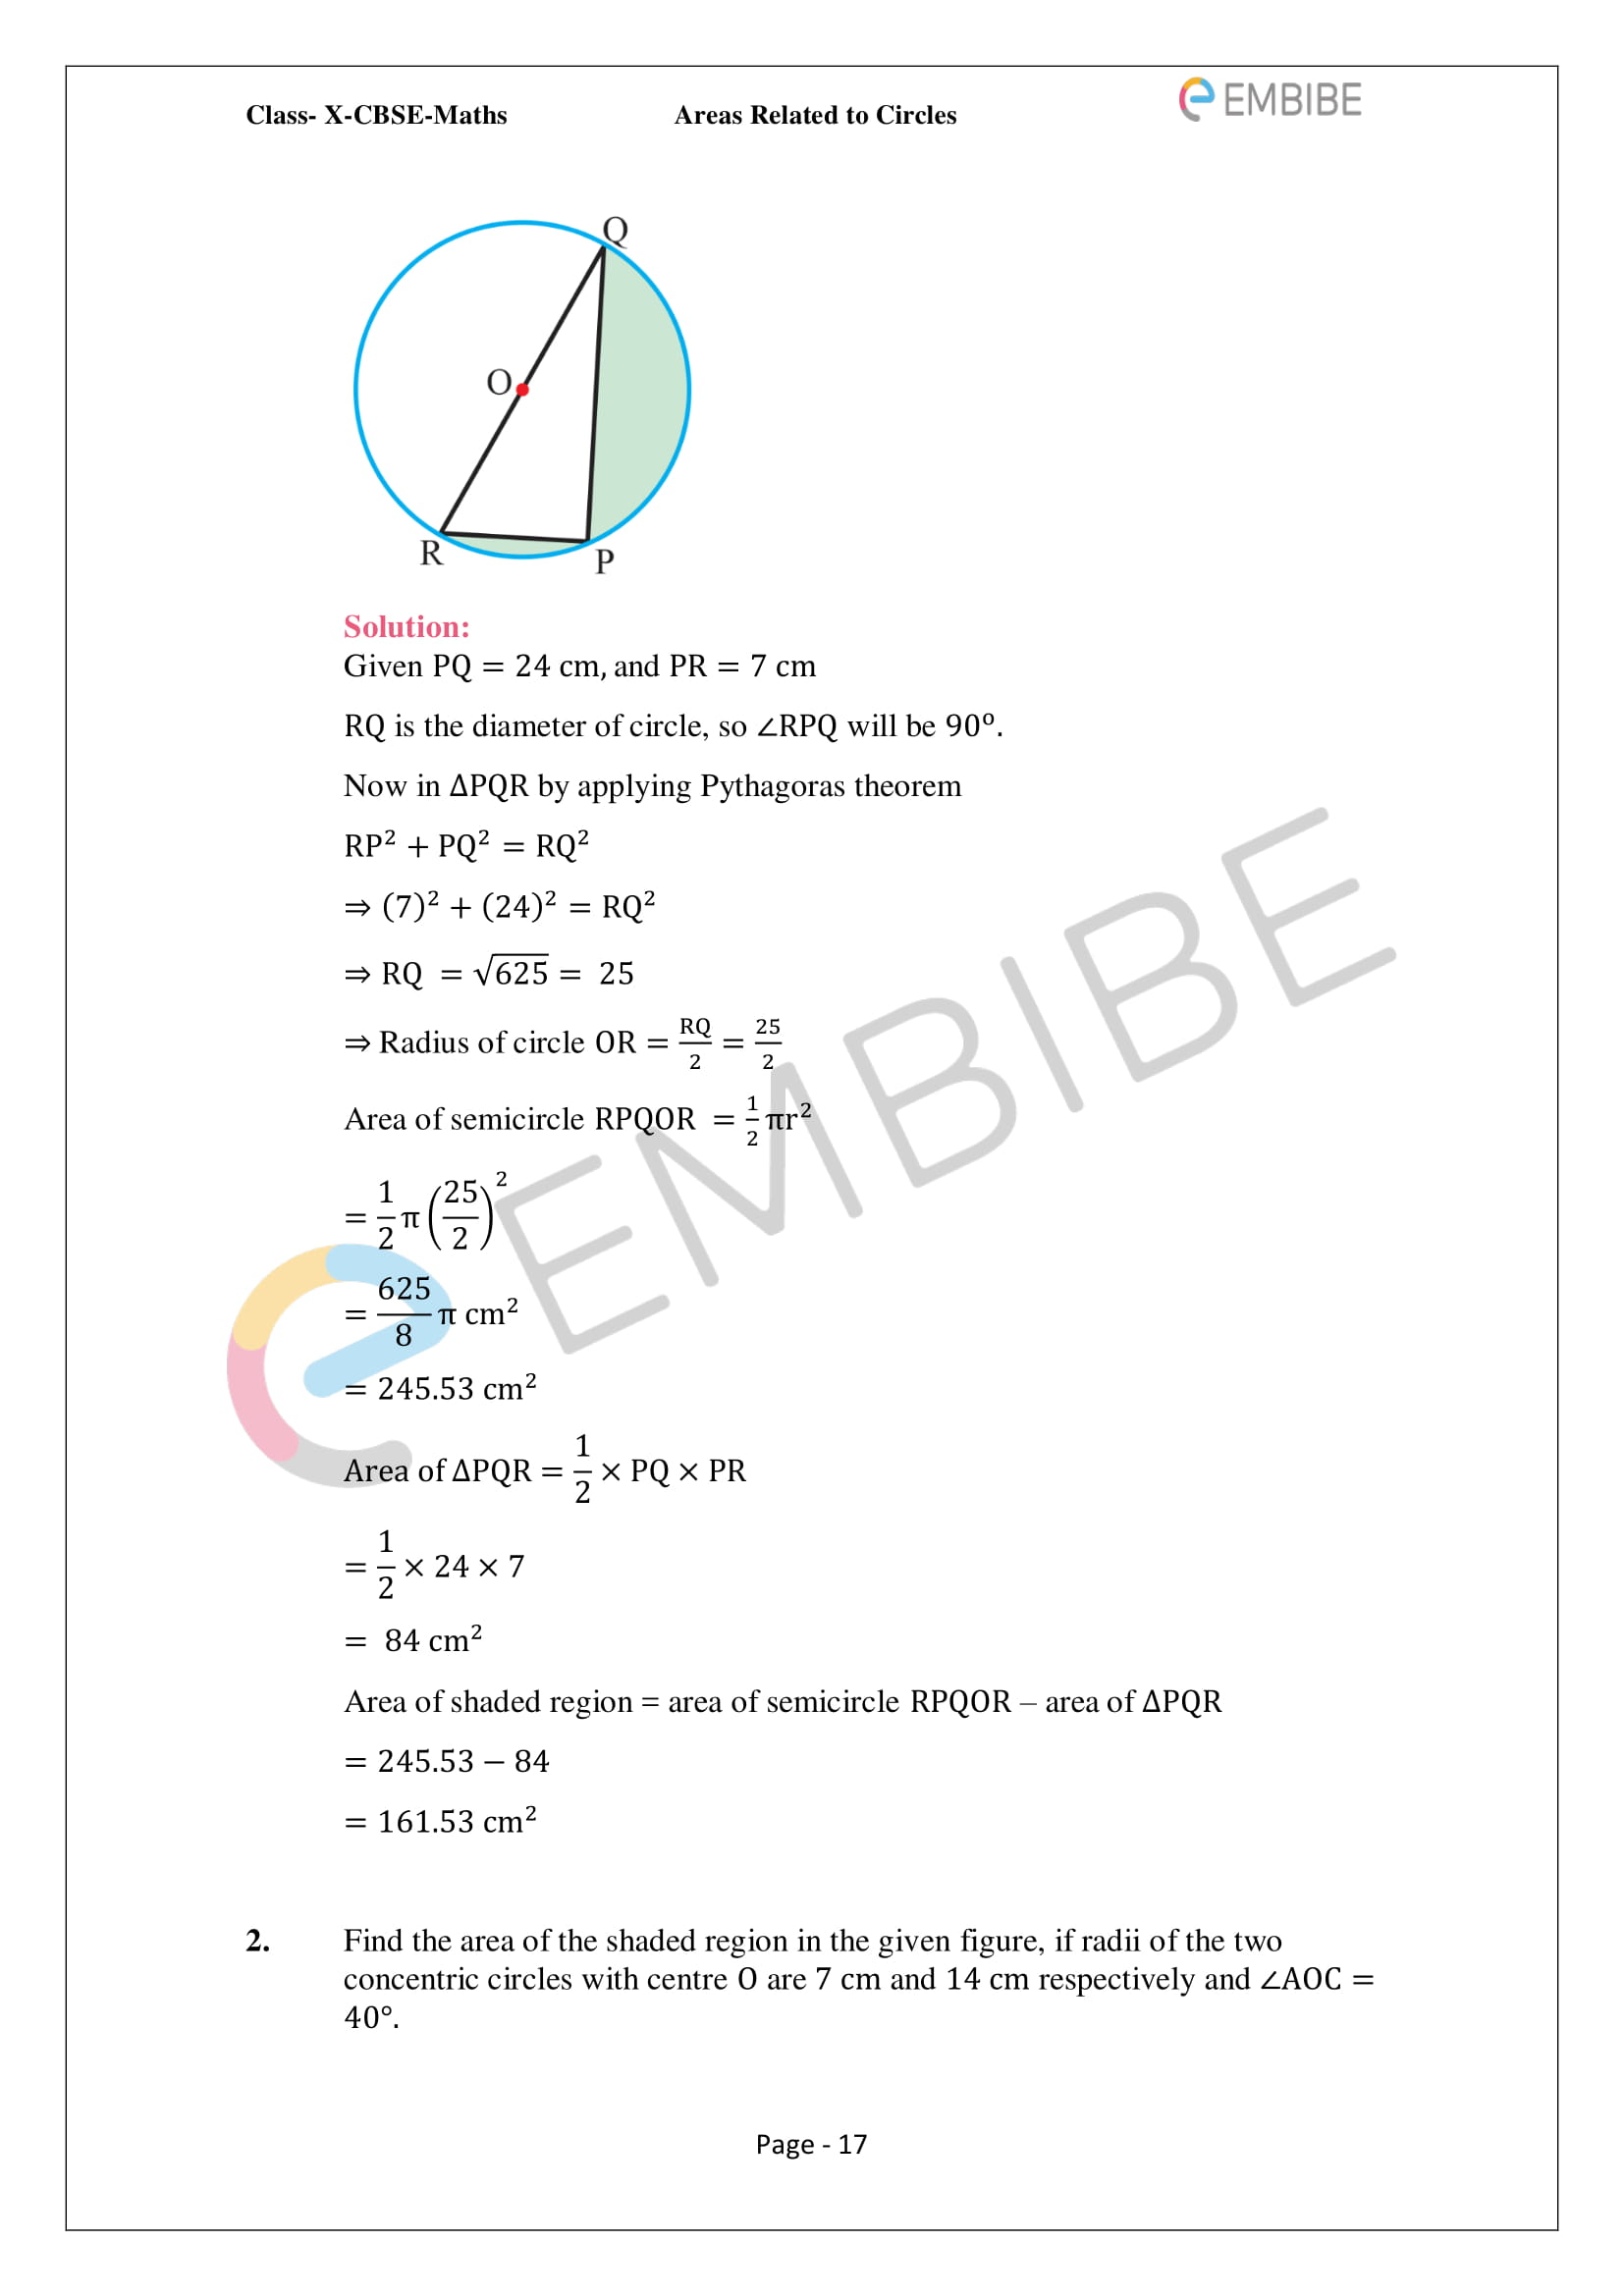 CBSE NCERT Solutions For Class 10 Maths Chapter 12 - Areas Related To Circle - 17